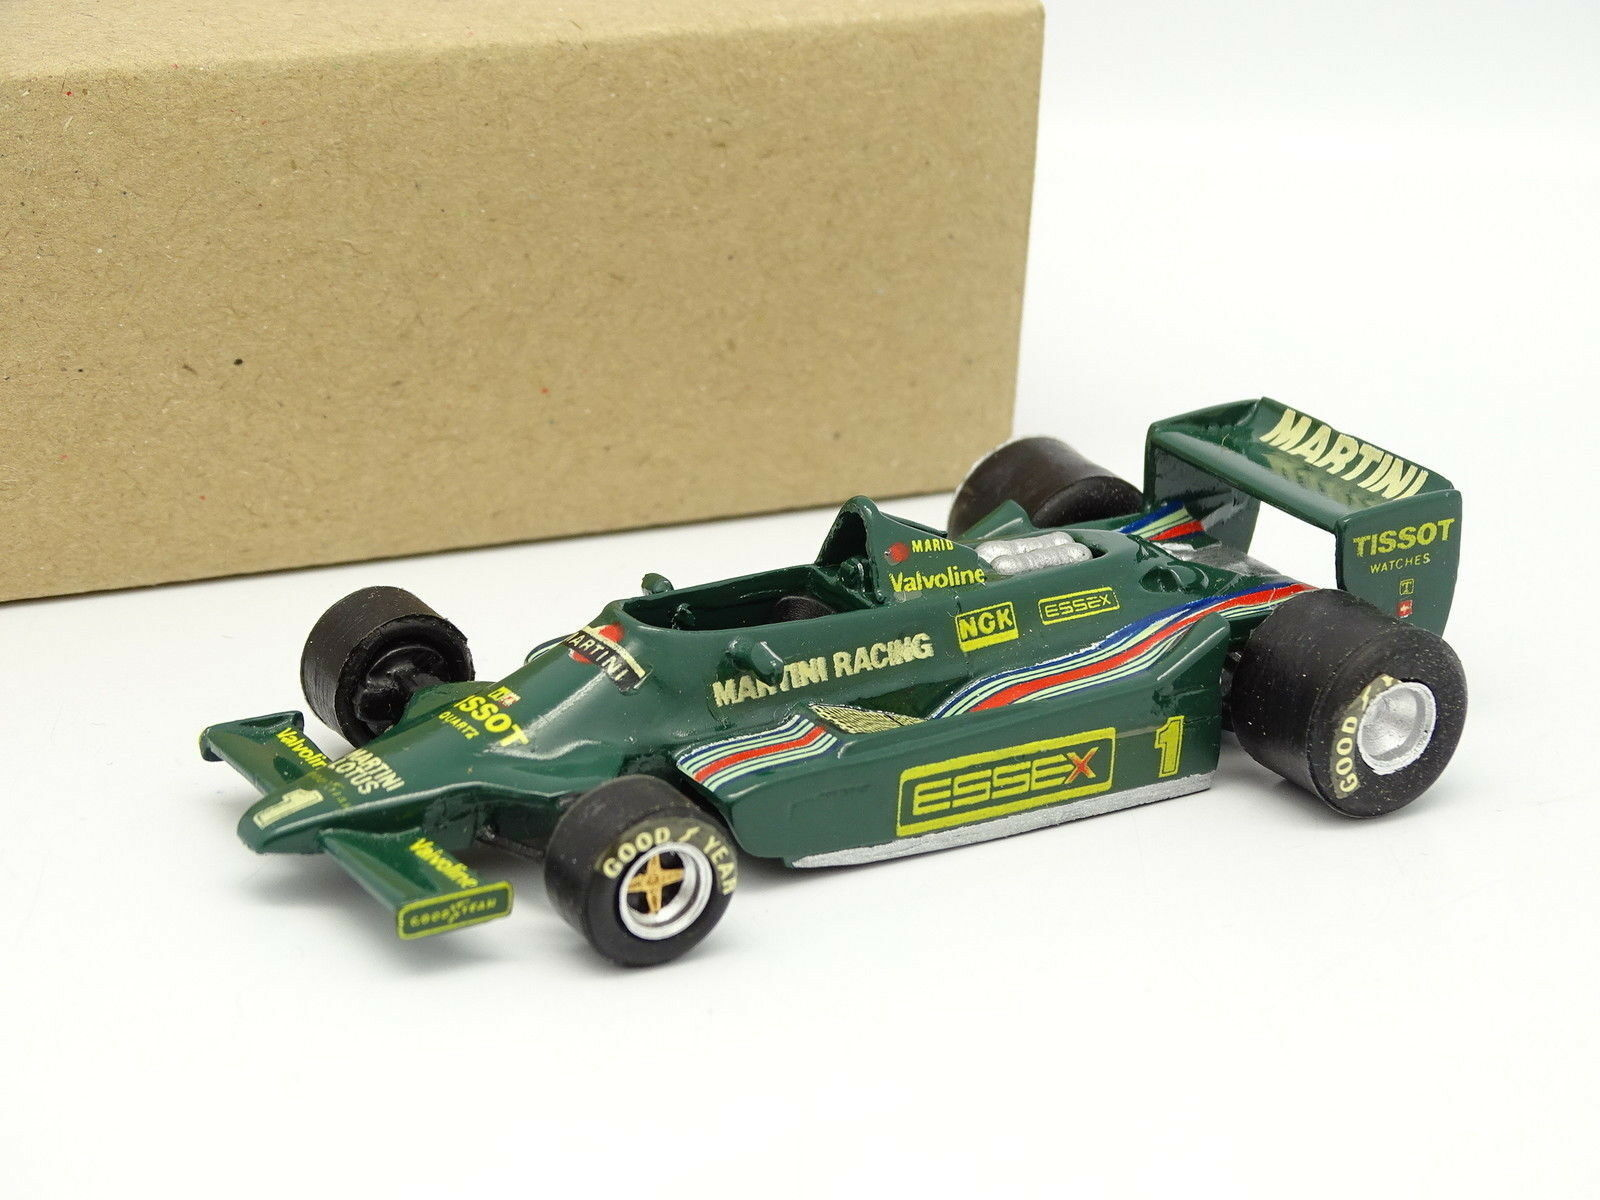 Eligor evrat kit assembled 1 43 - f1 lotus 79 ford martini gp italy 1979 andretti